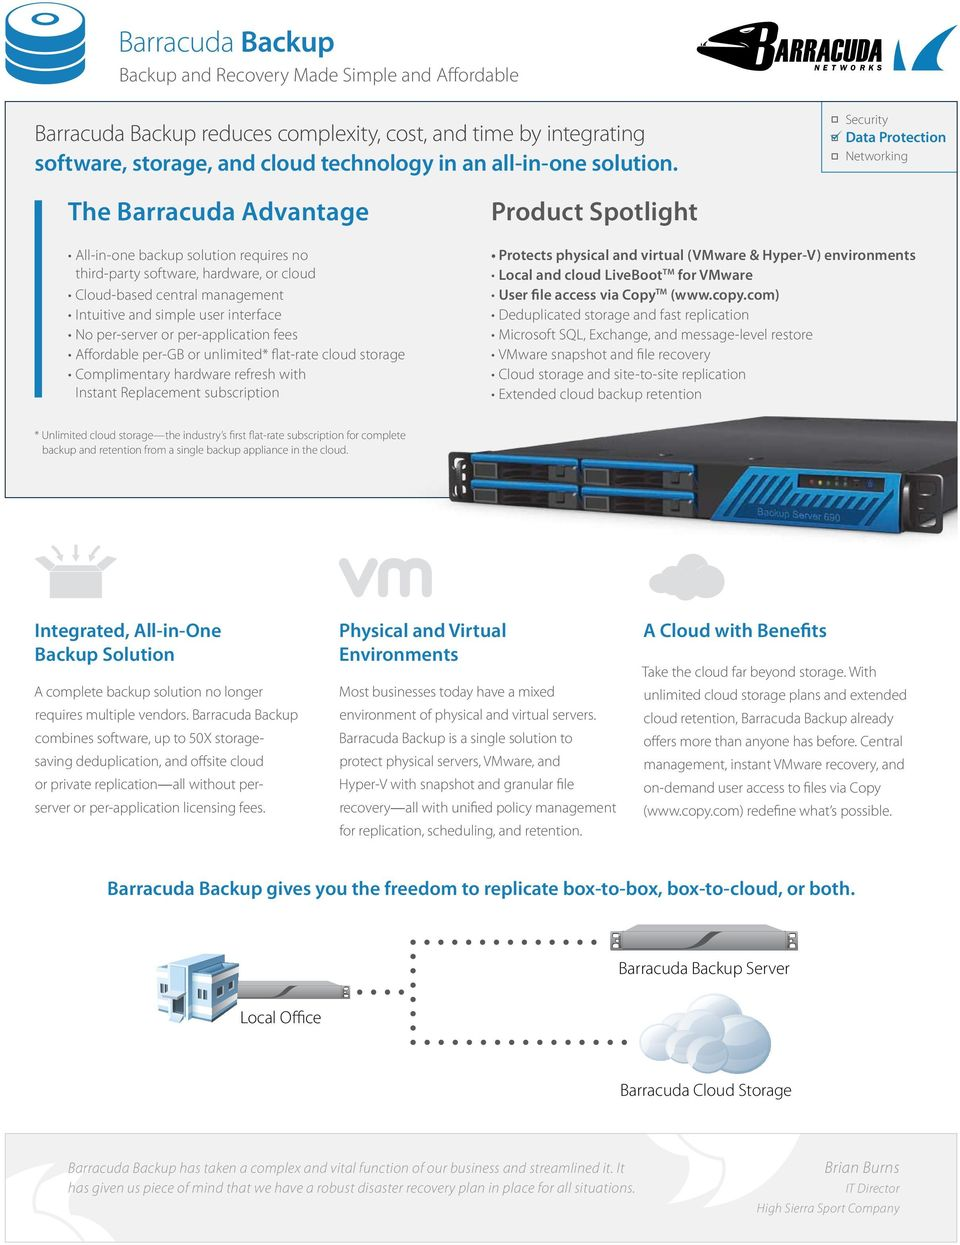 interface No per-server or per-application fees Affordable per-gb or unlimited* flat-rate cloud storage Complimentary hardware refresh with Instant Replacement subscription Product Spotlight Protects